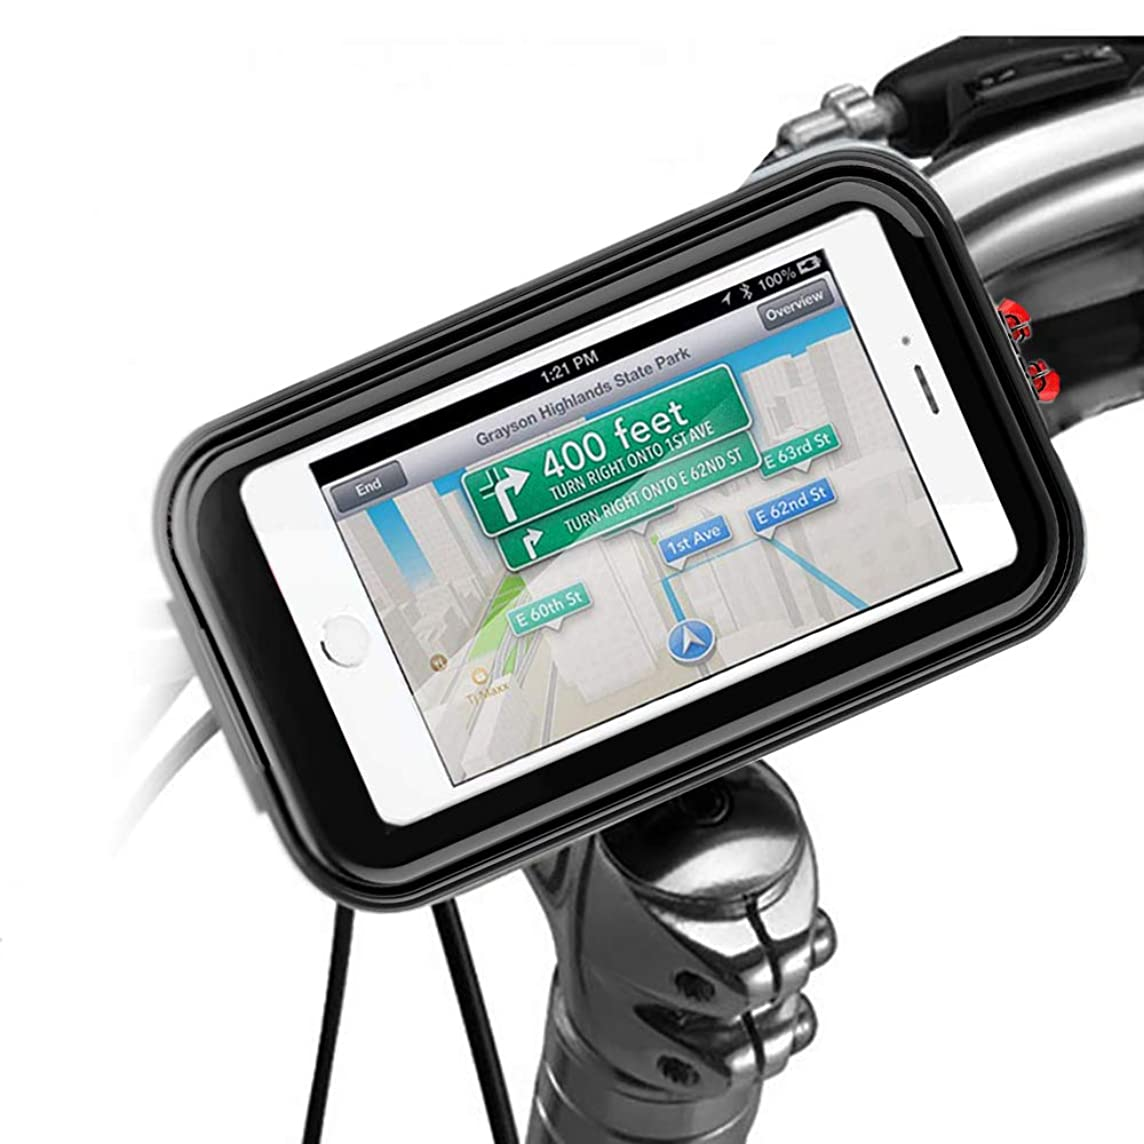 Bike Front Phone Bags Waterproof Front Frame Top Tube Mount Cycling Phone Holder Case with Sensitive Touch Screen Road Mountain Bicycle Handlebar Storage Bags Below 6.2'' Cellphone iPhone 6 7 8 Plus X